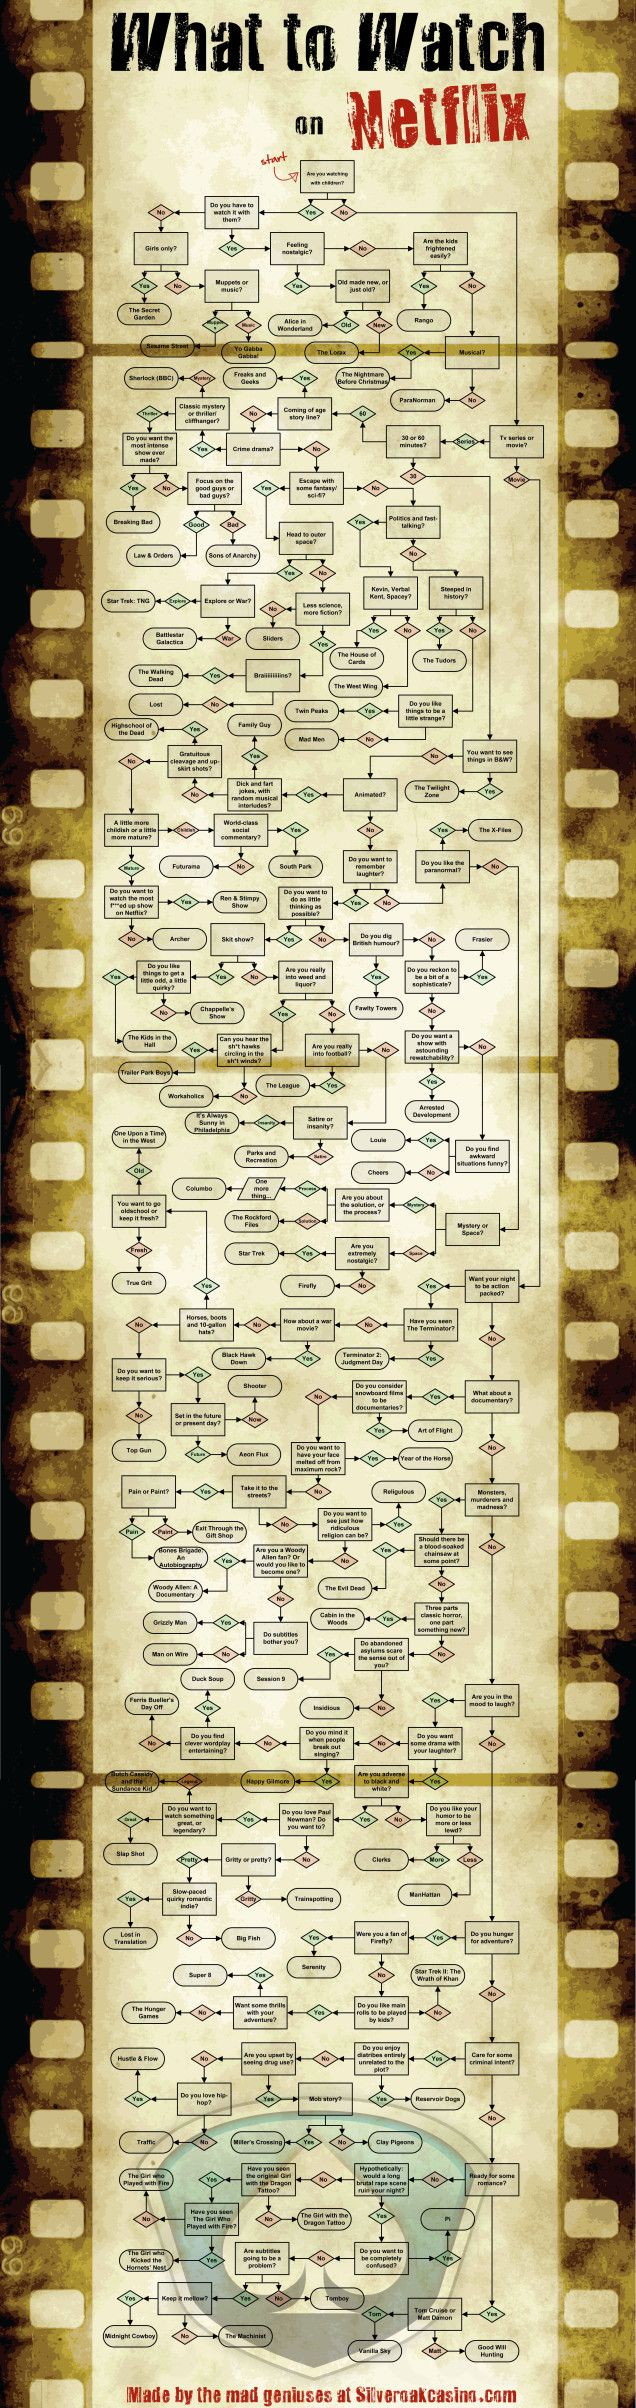 This Genius Netflix Flowchart Will Tell You Exactly What to Watch - GENIUS... Didn't know which board to put it under so...